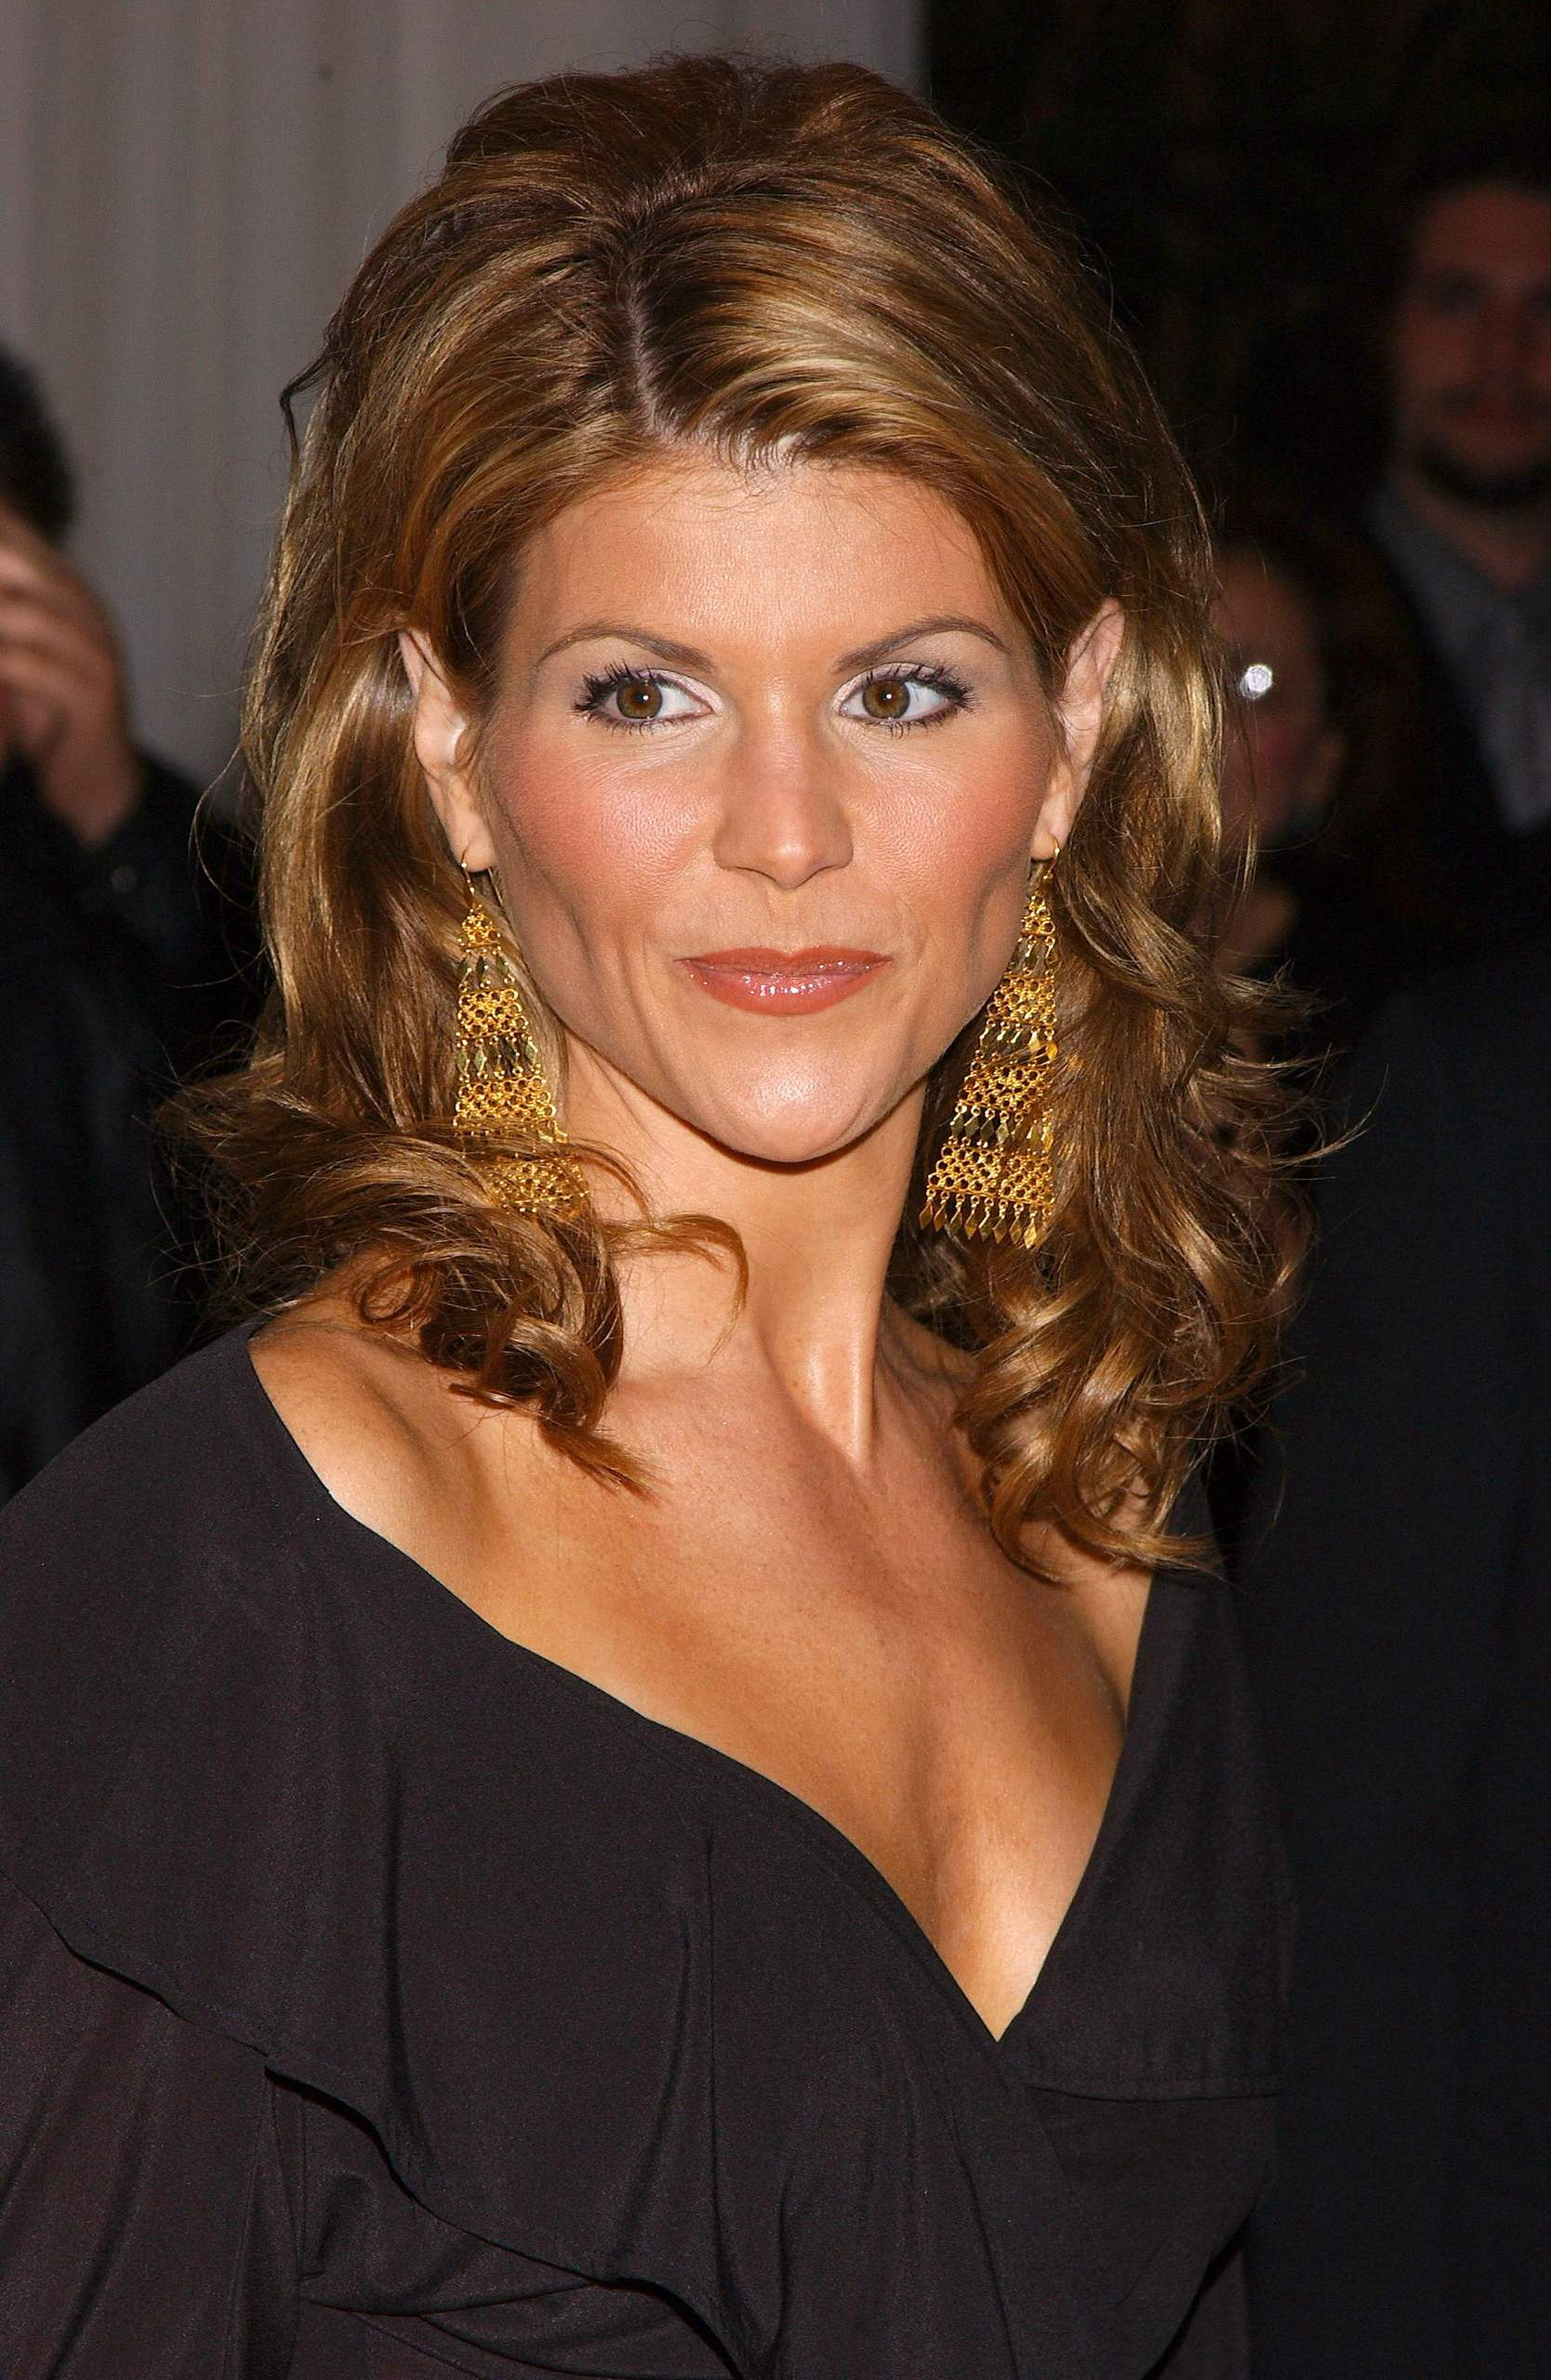 The 6th Annual Family Television Awards Lori Loughlin